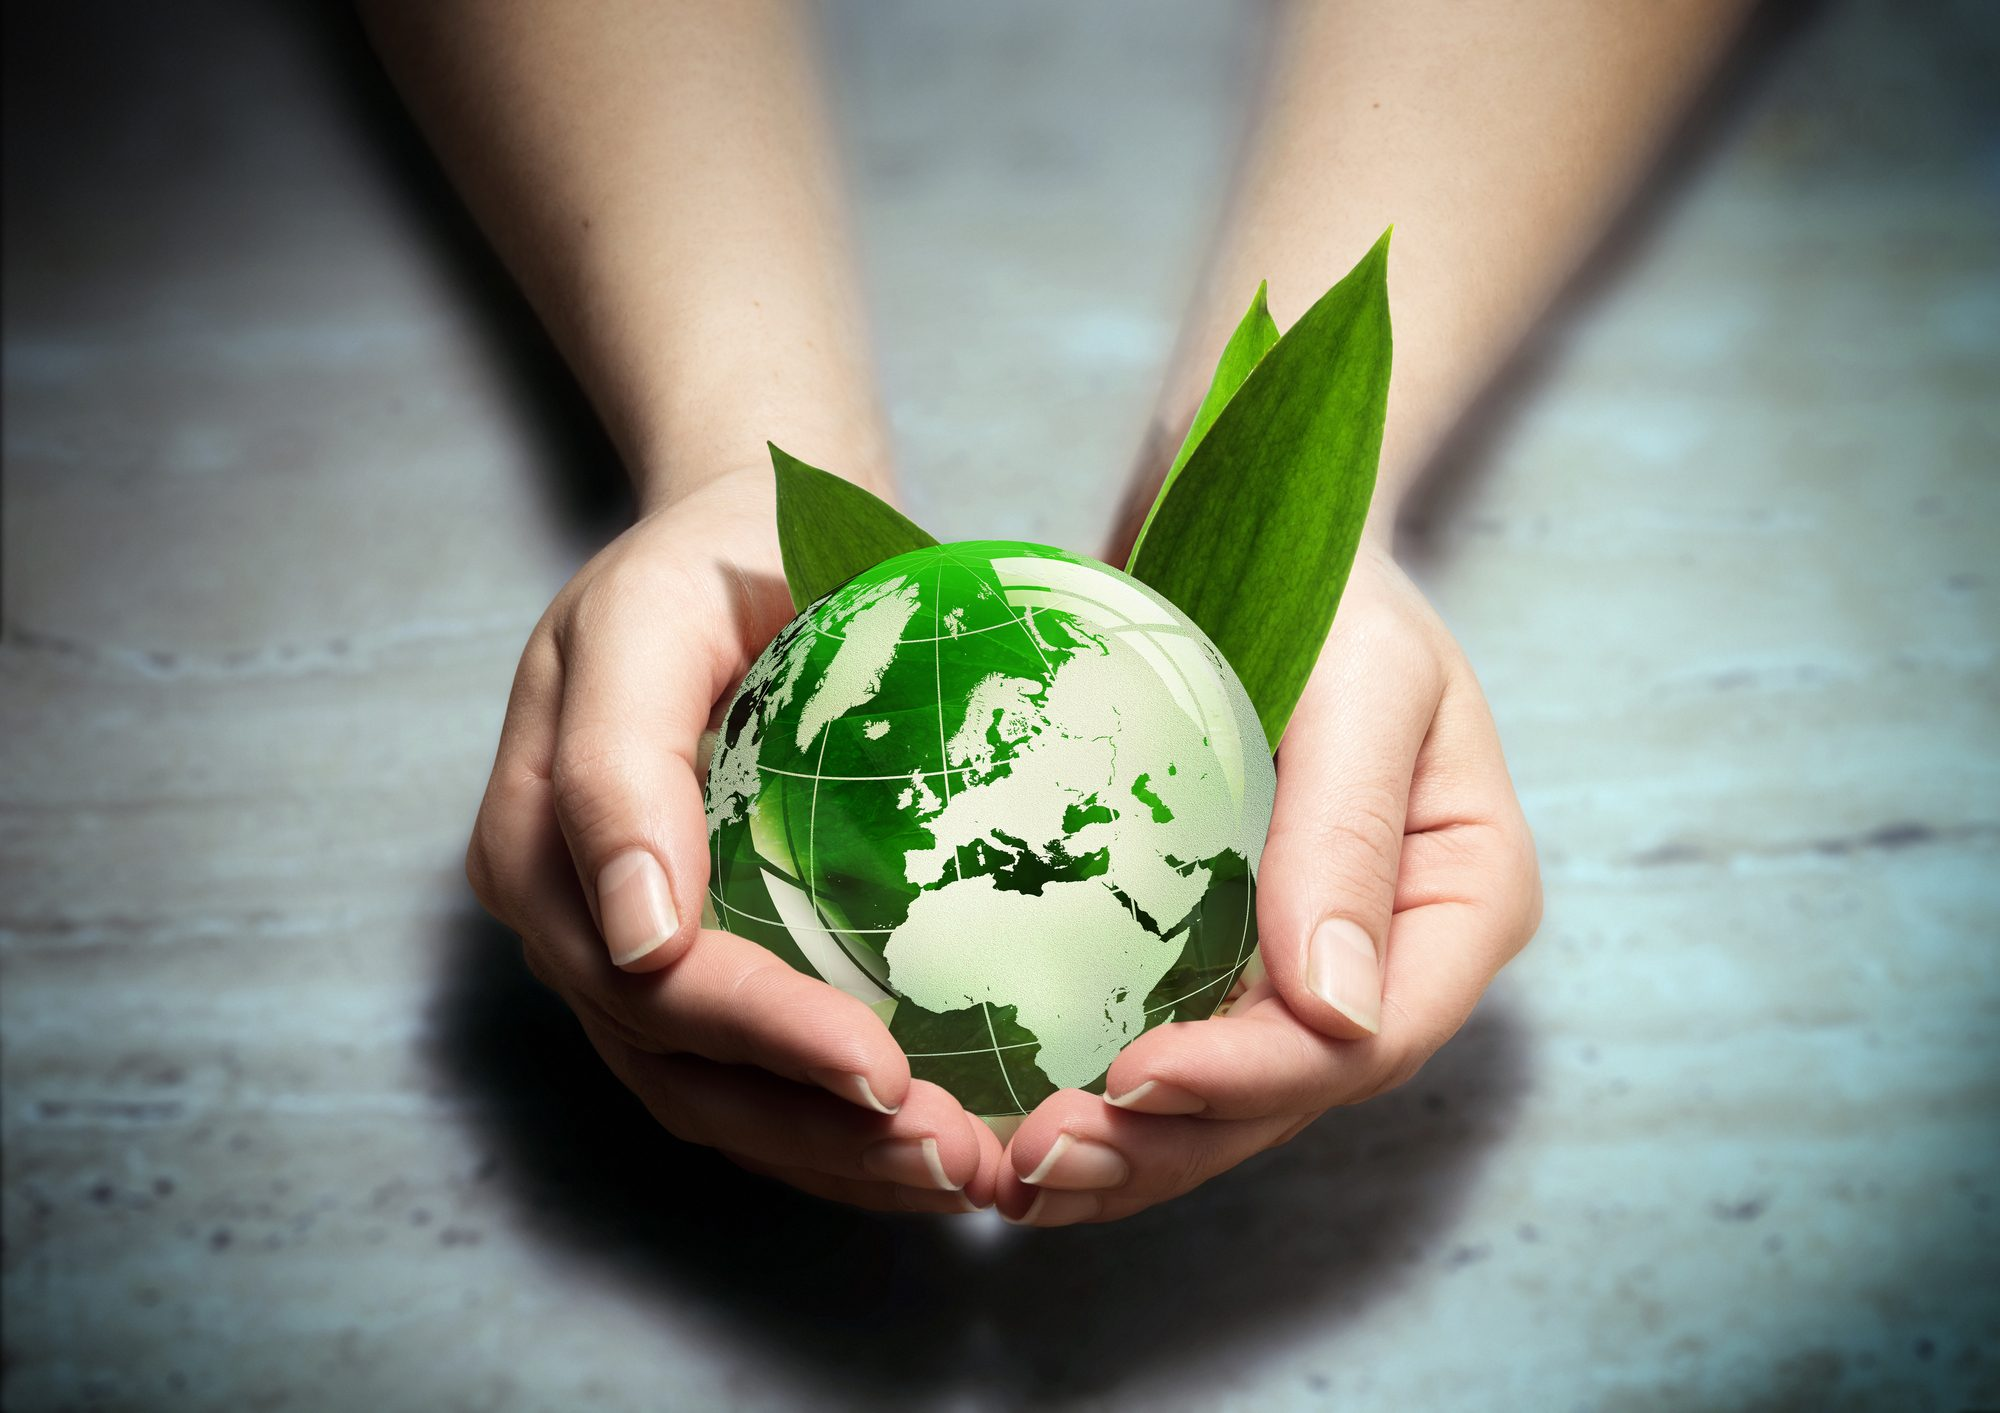 How Are You Marketing Your Brand's Sustainability and Diversity?